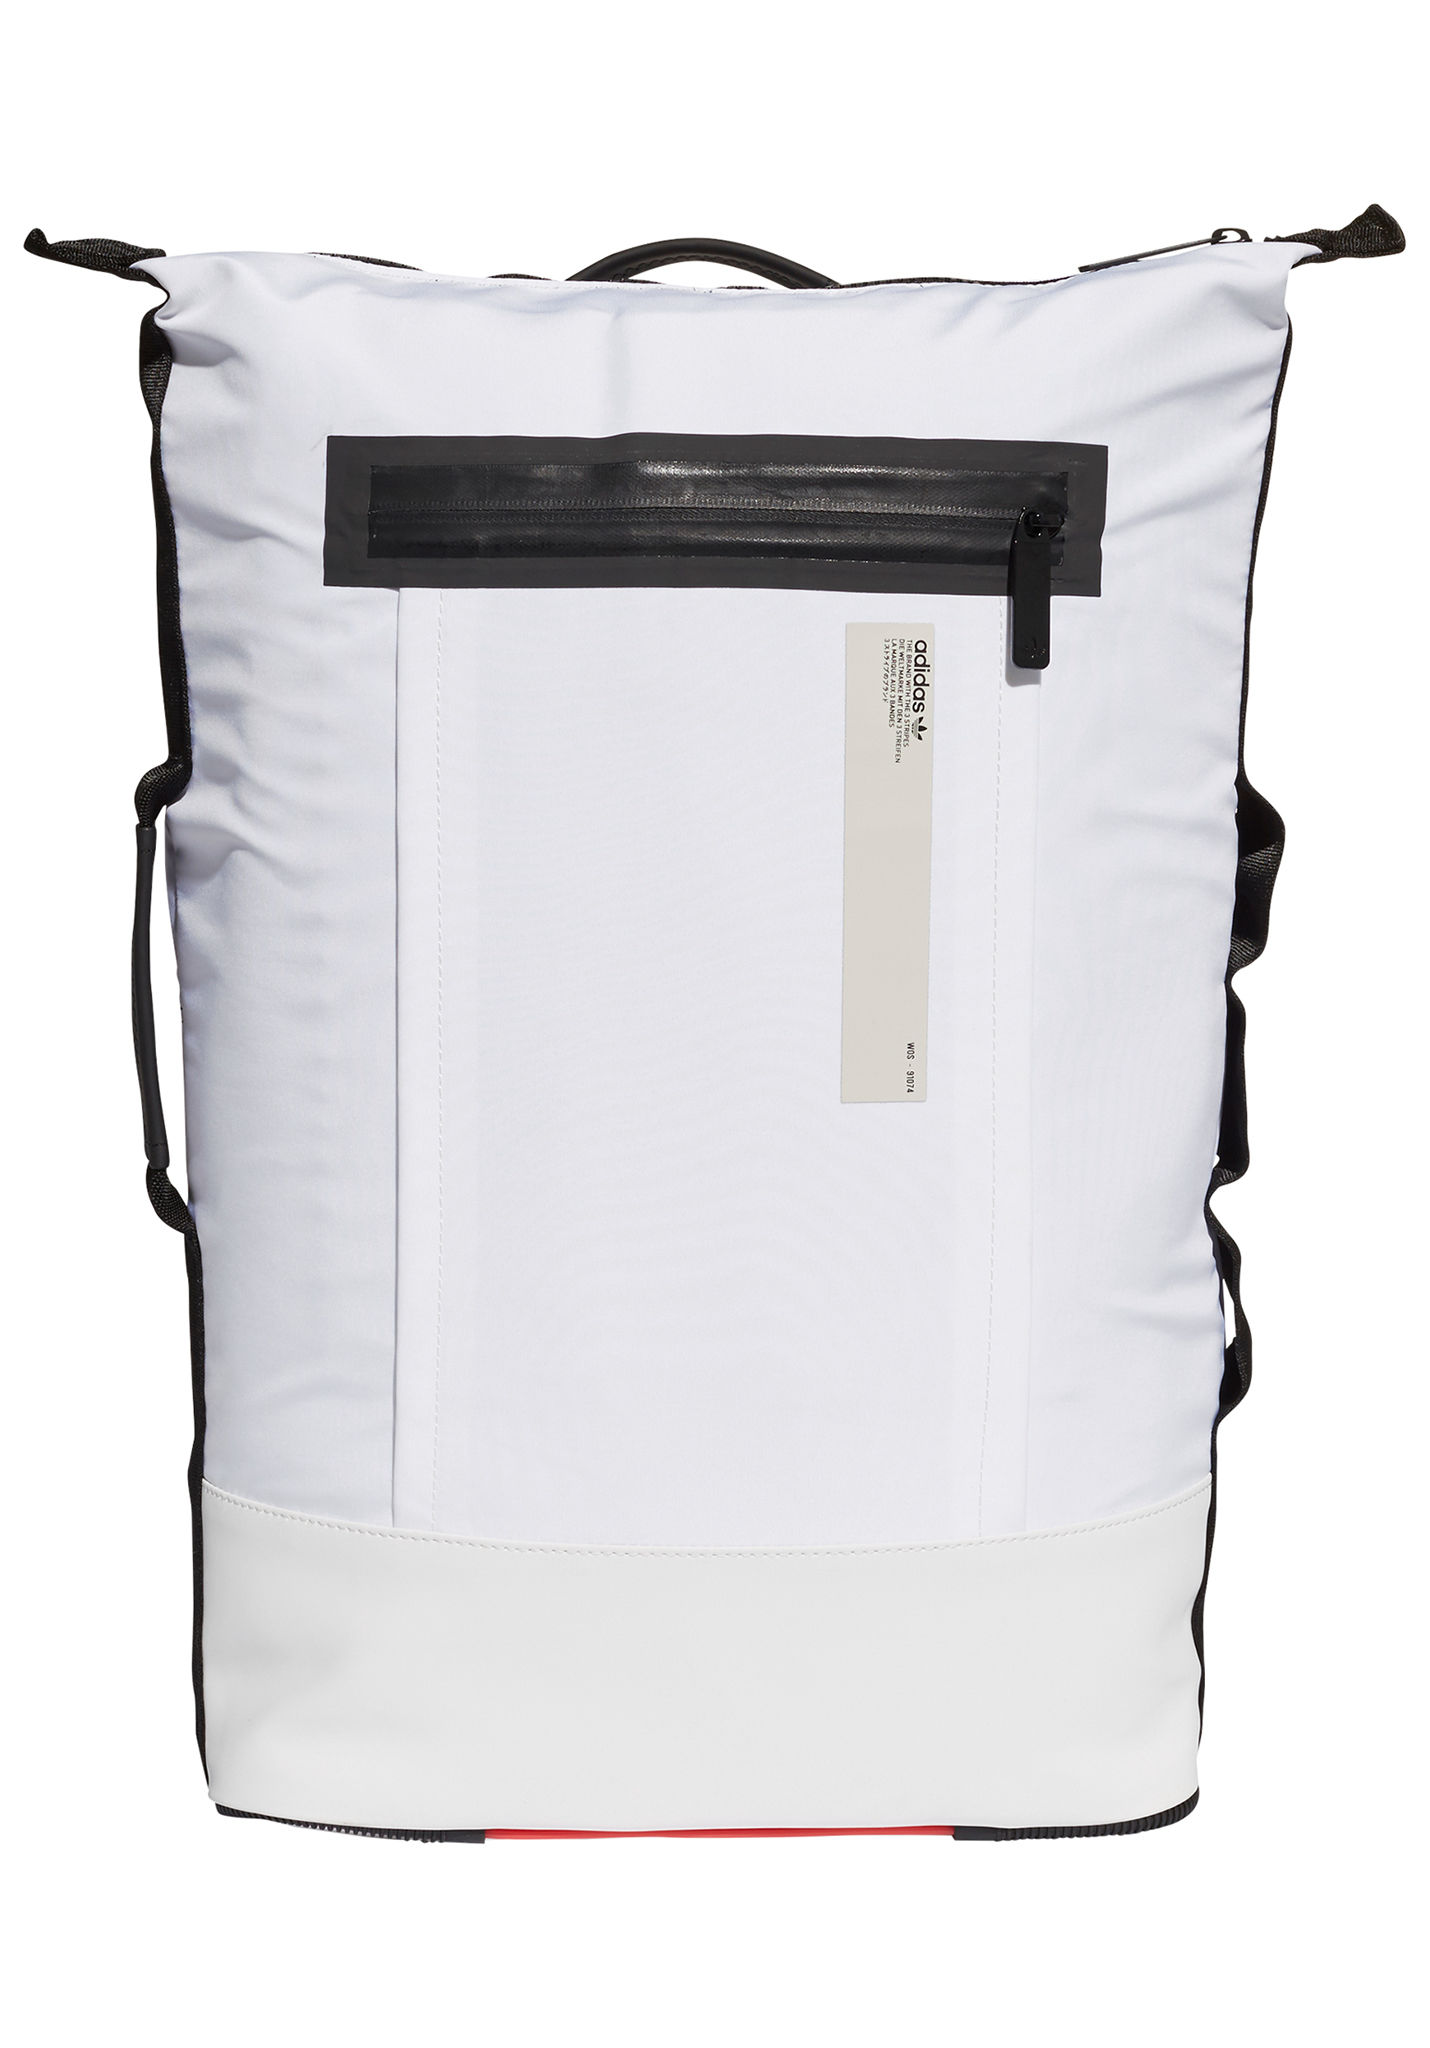 ADIDAS ORIGINALS Nmd S - Backpack - White - Planet Sports 027b6f5d83c02